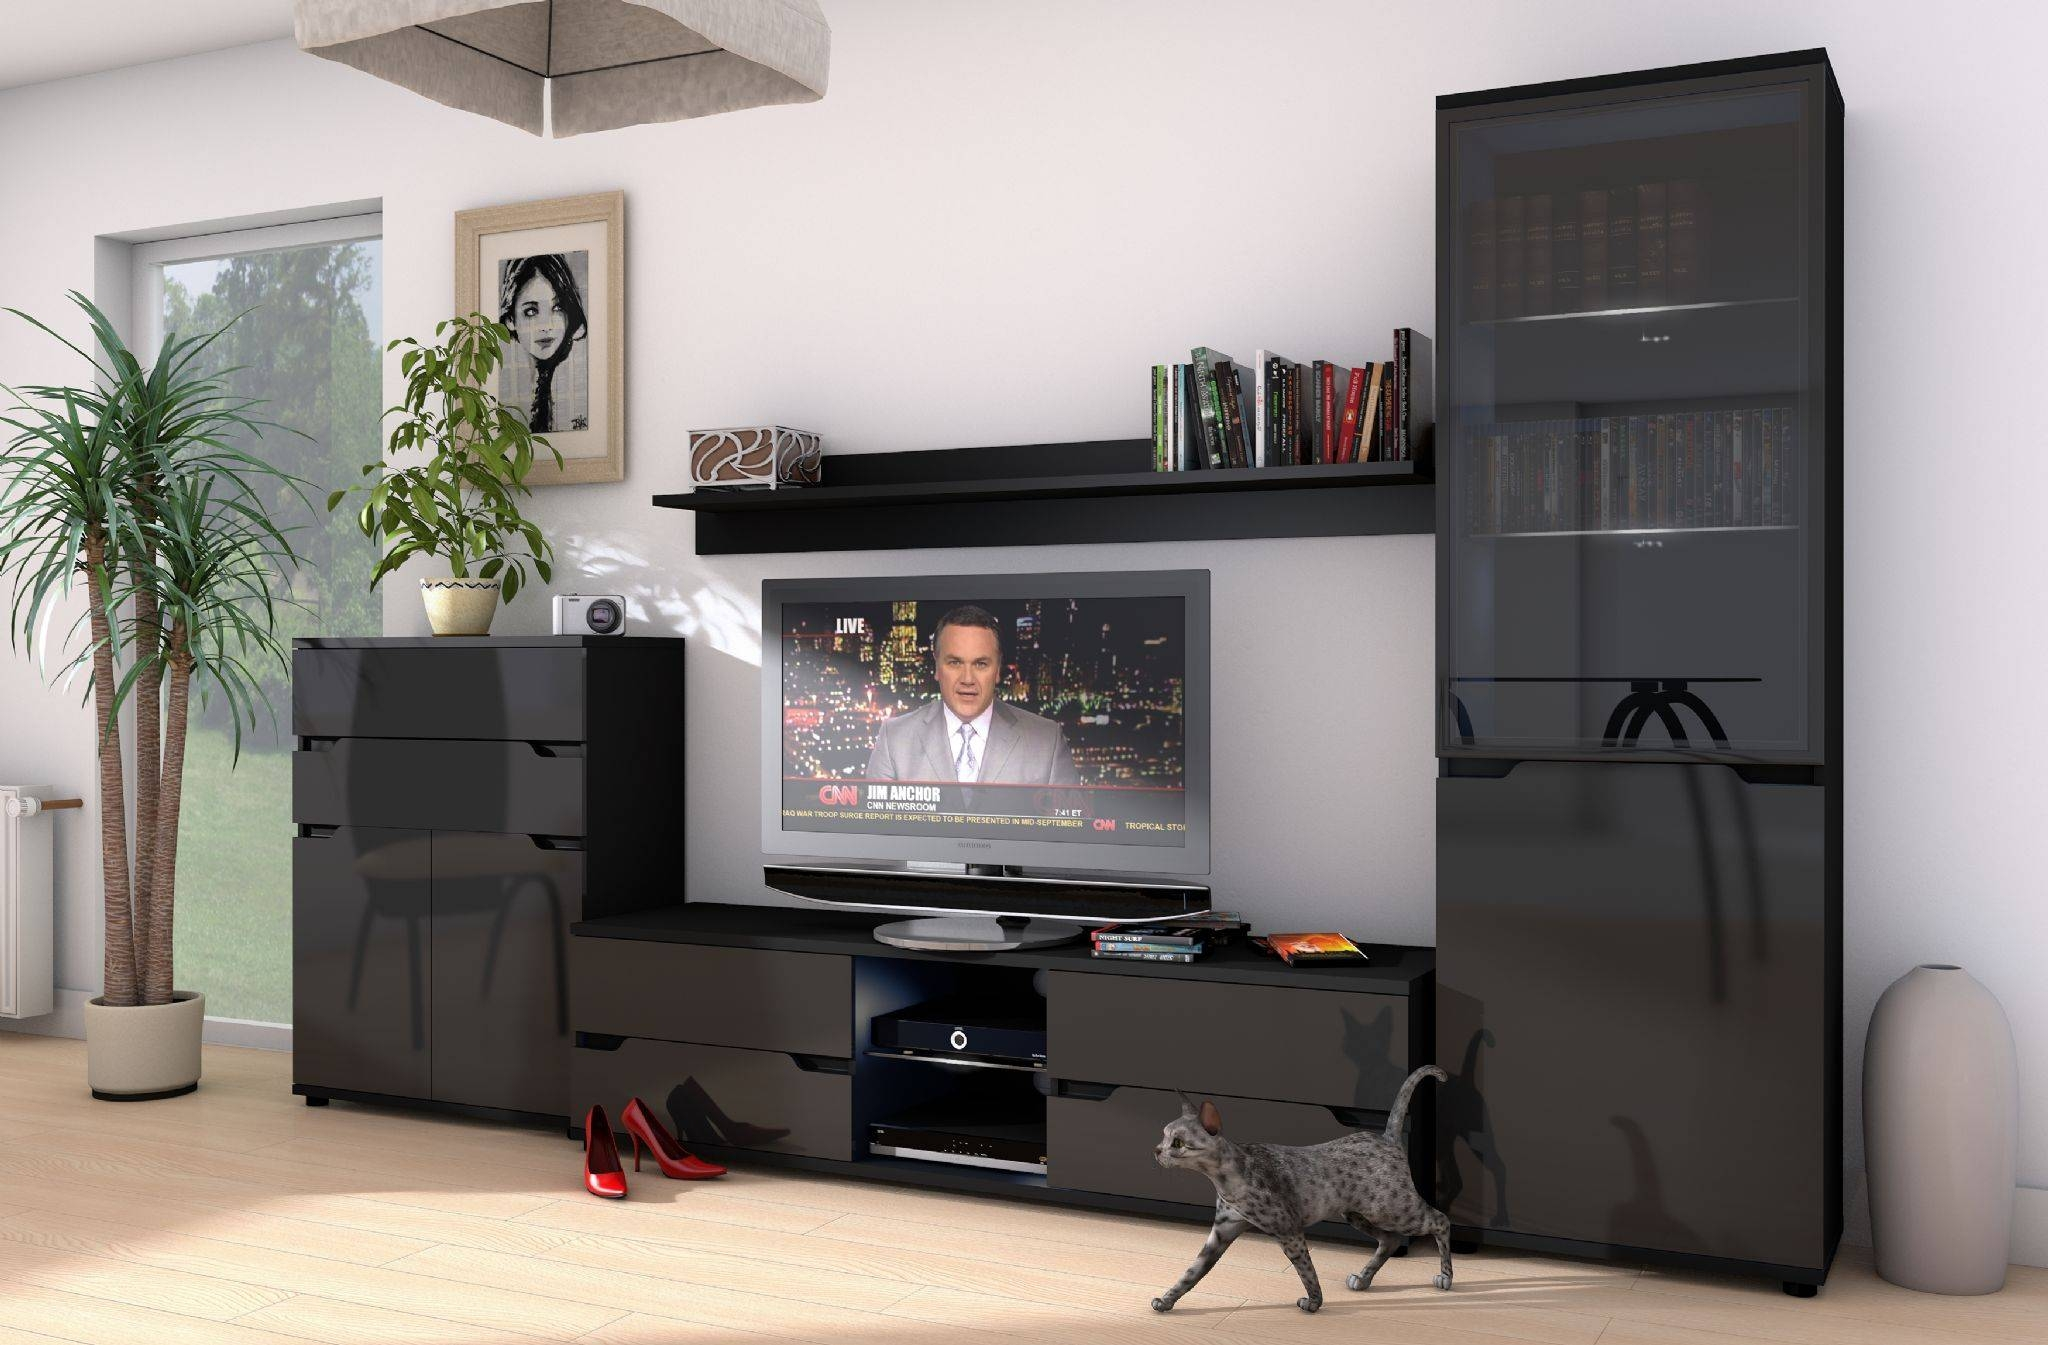 Aspen Tv Unit High Gloss Black P980As30 - Amos Mann Furniture inside Tall Black Tv Cabinets (Image 3 of 15)